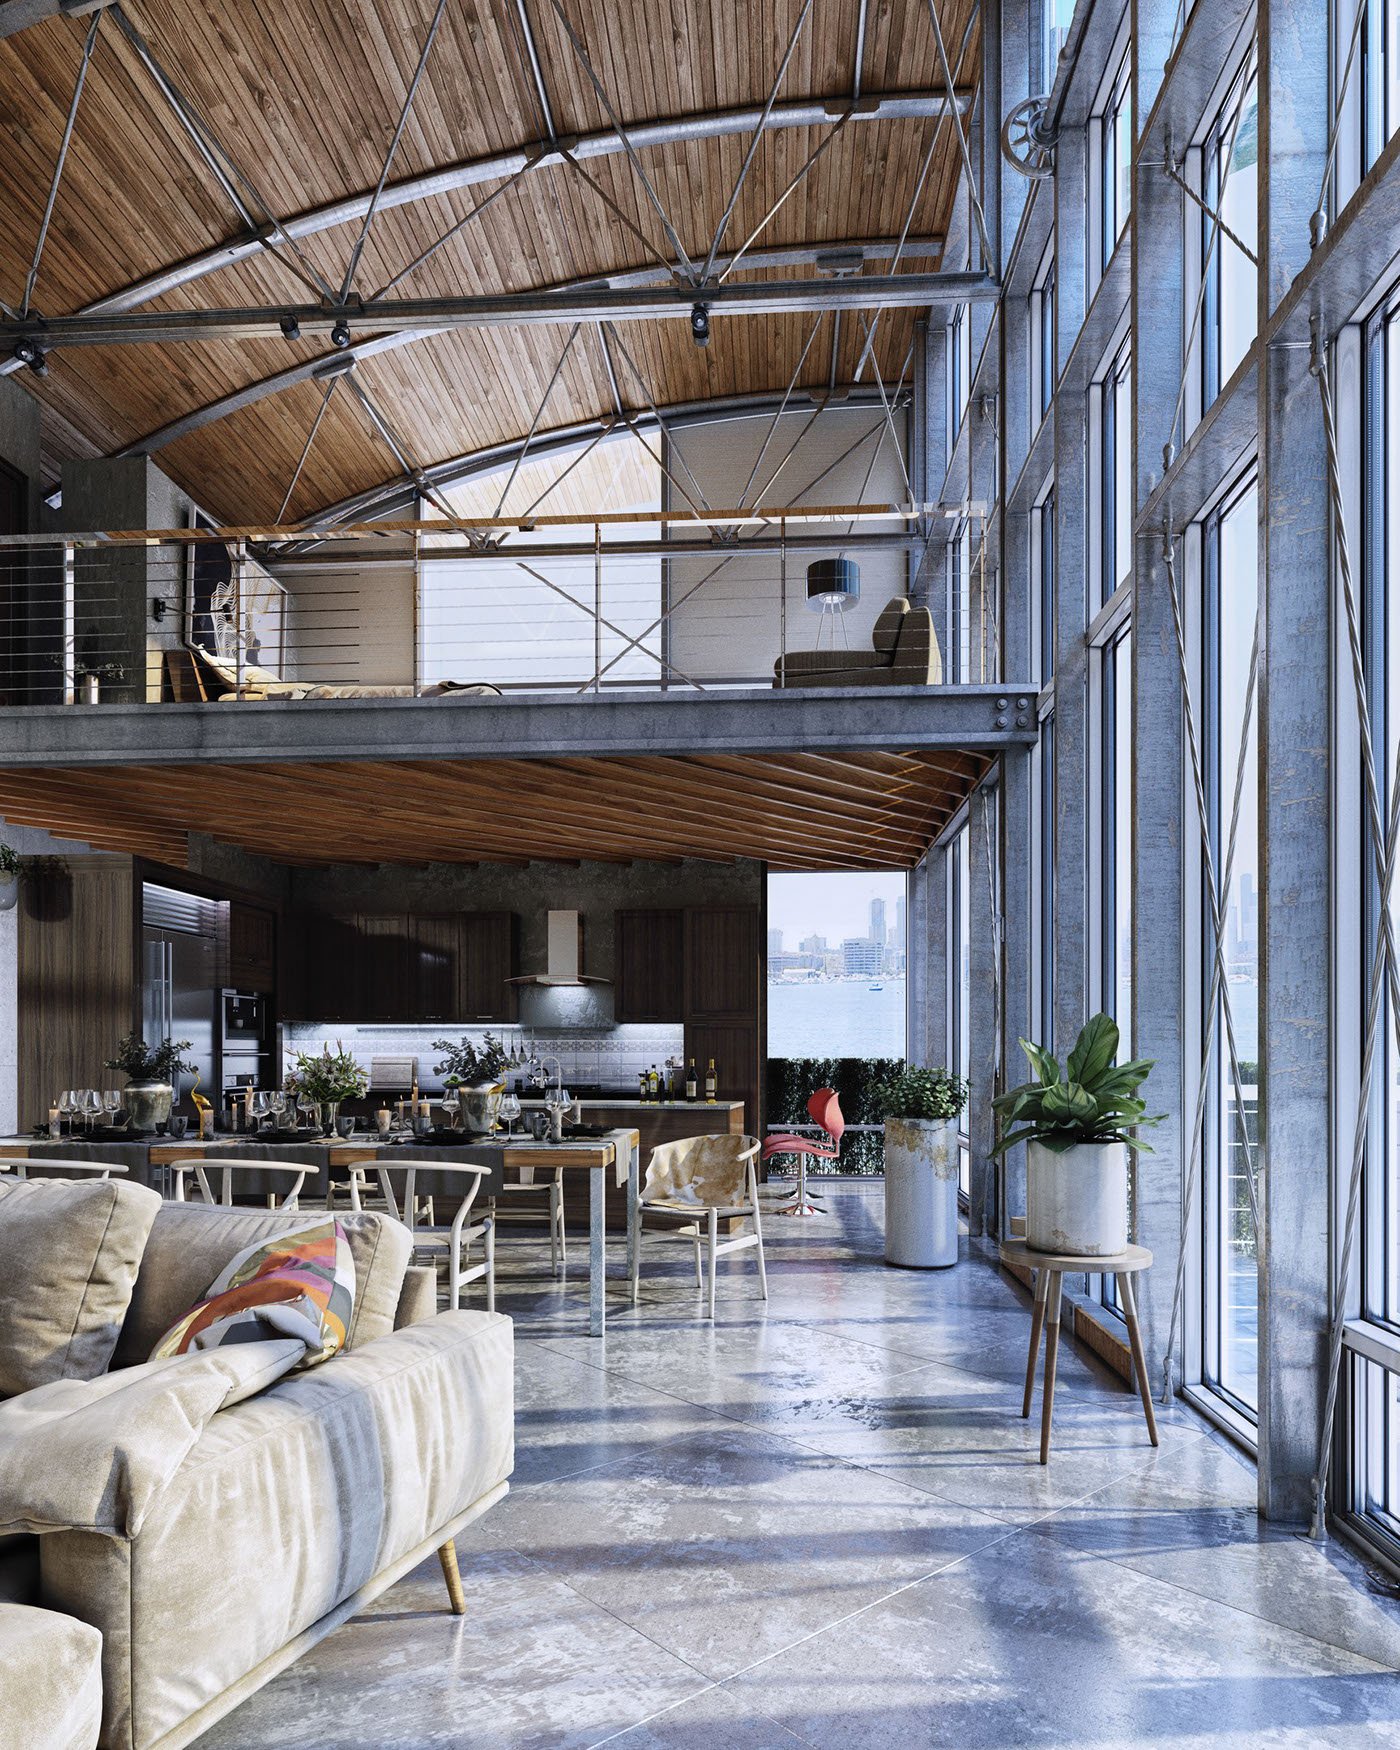 INDUSTRIAL LOFT HOUSE On Behance